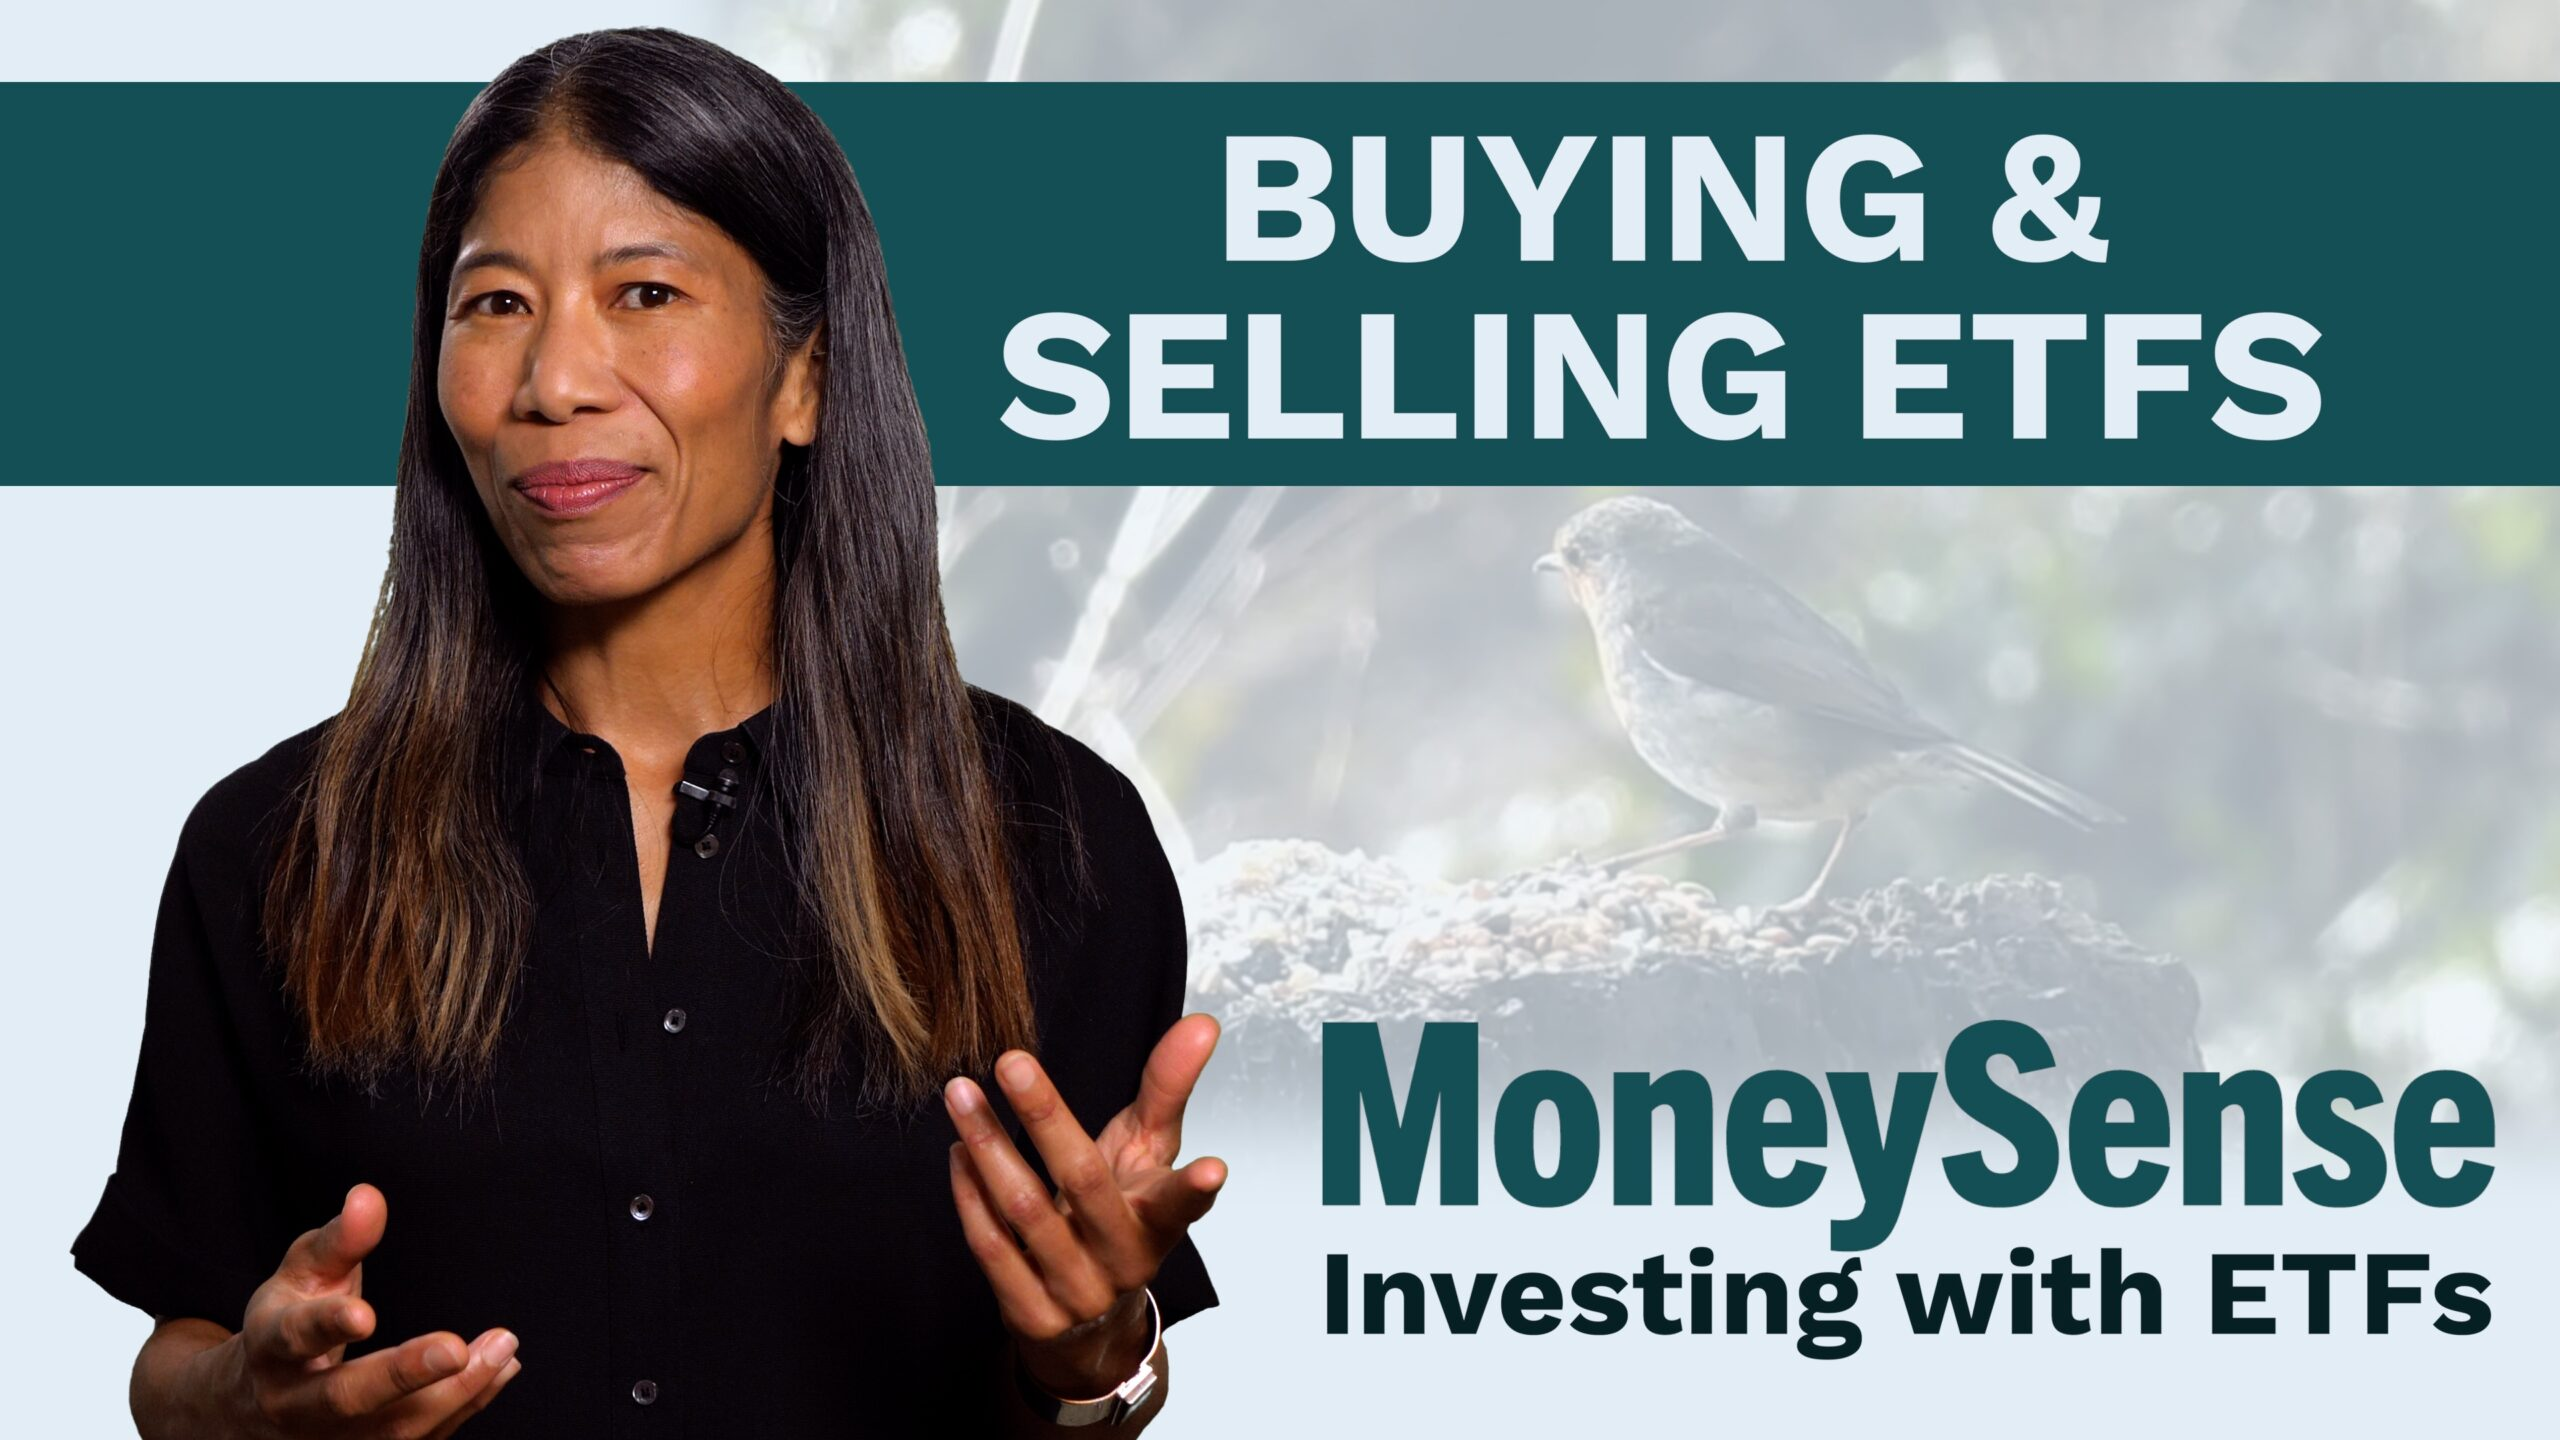 moneysense editor discusses how to buy and sell etfs